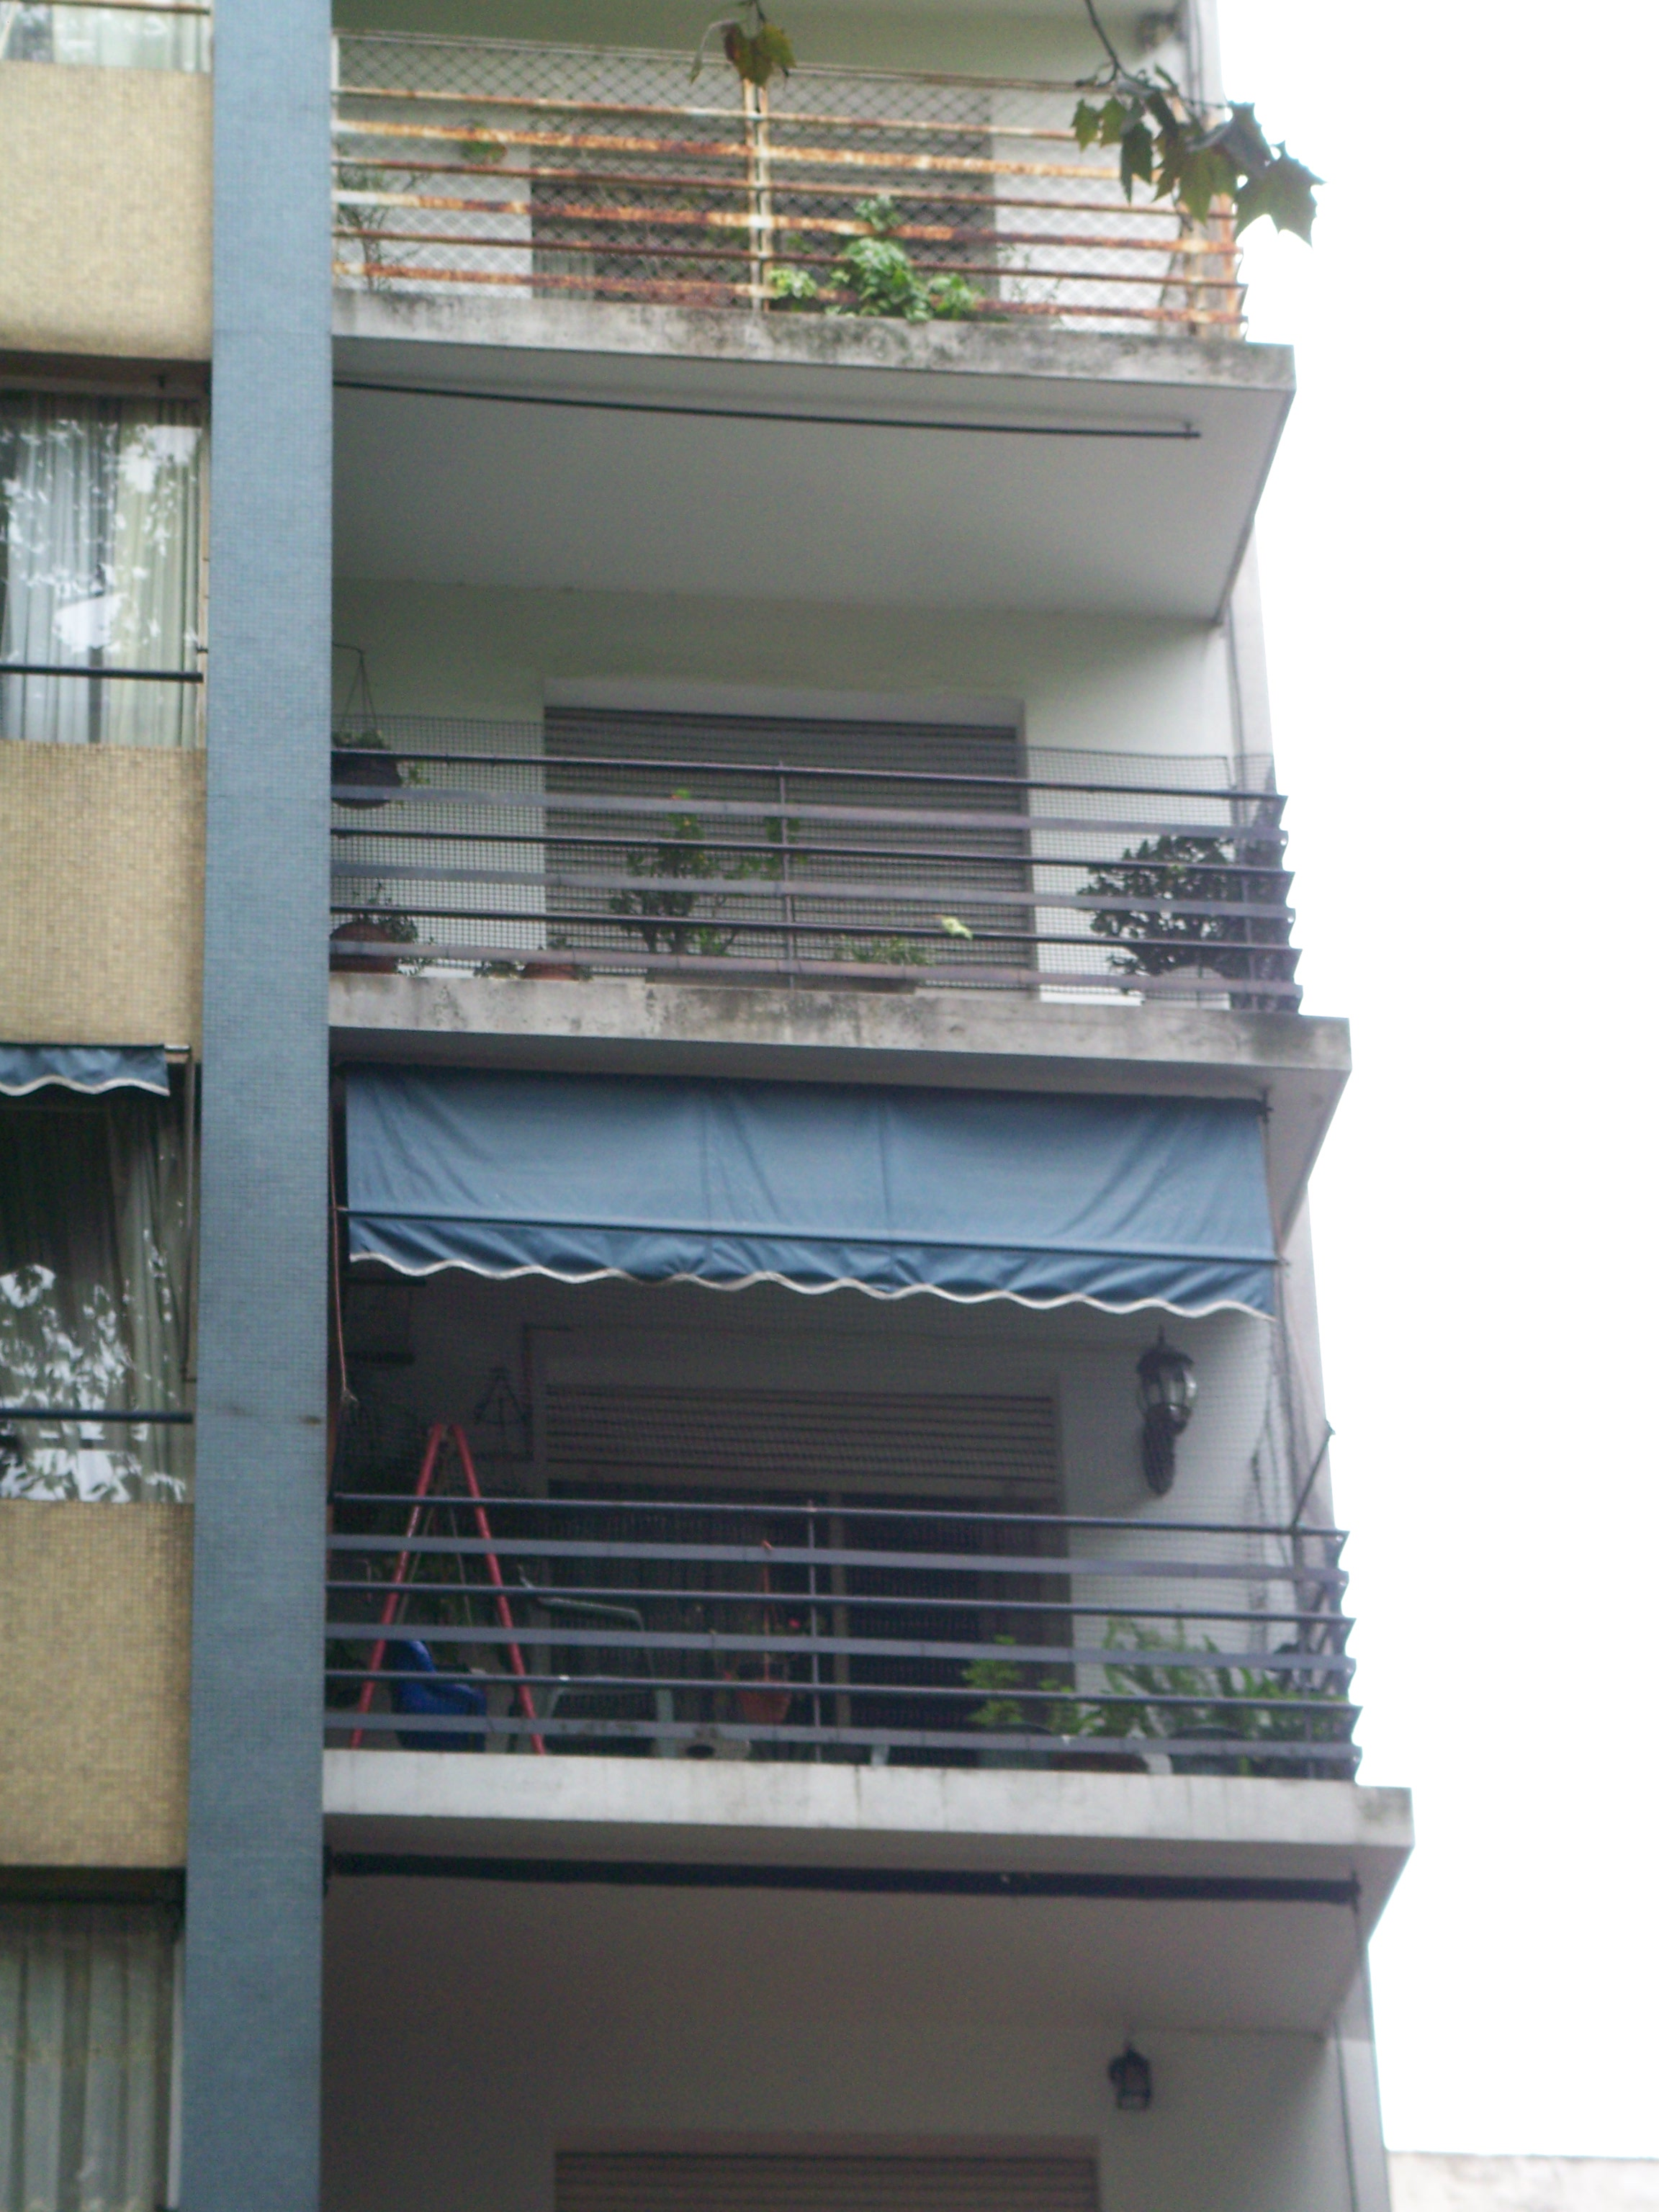 Three decks, all with mesh over the railings